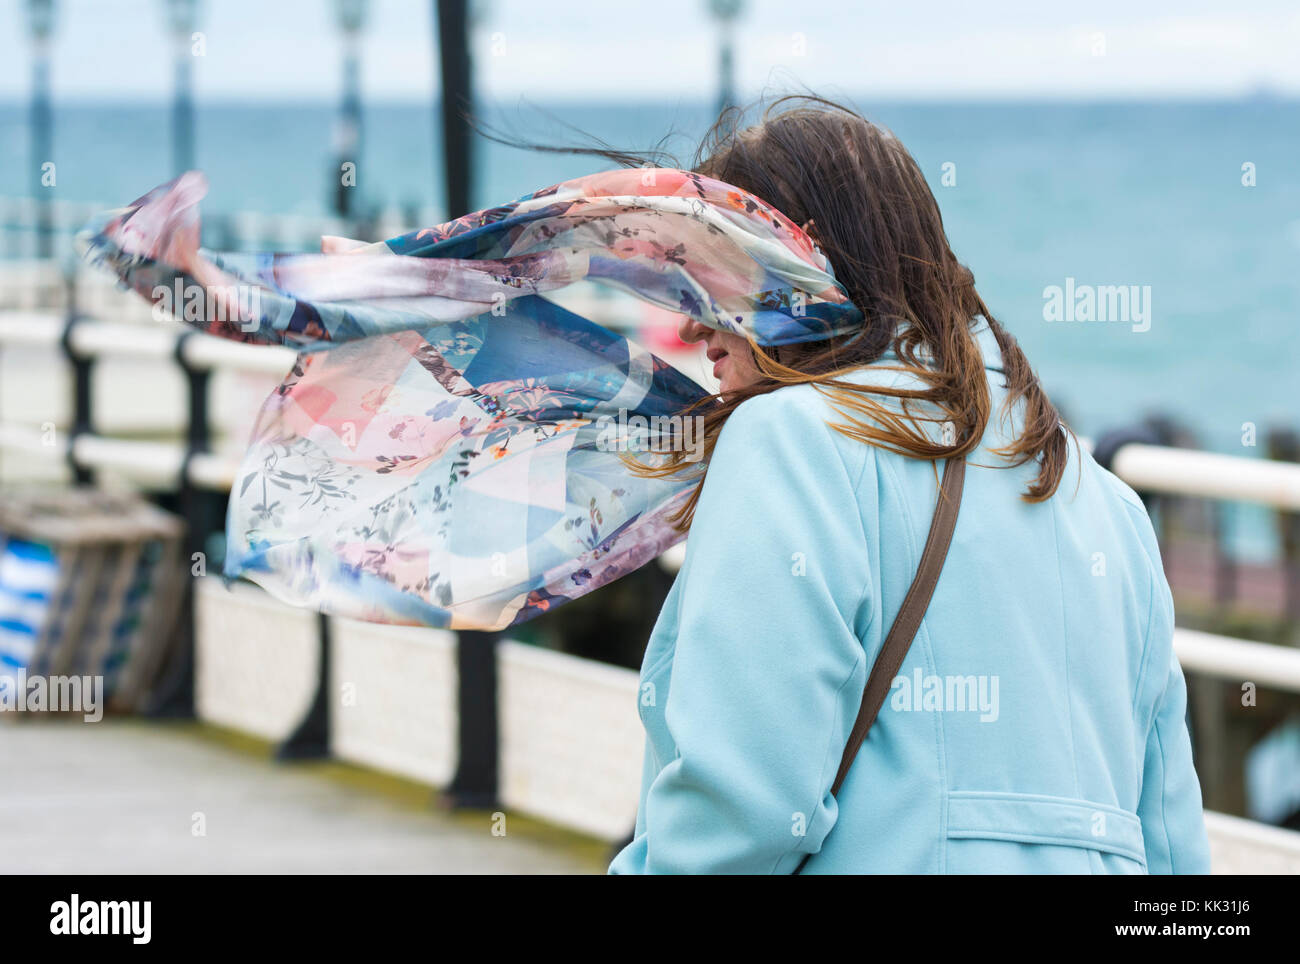 Woman walking on a windy day in Autumn with a coat and scarf, blowing in the wind, in the UK. - Stock Image